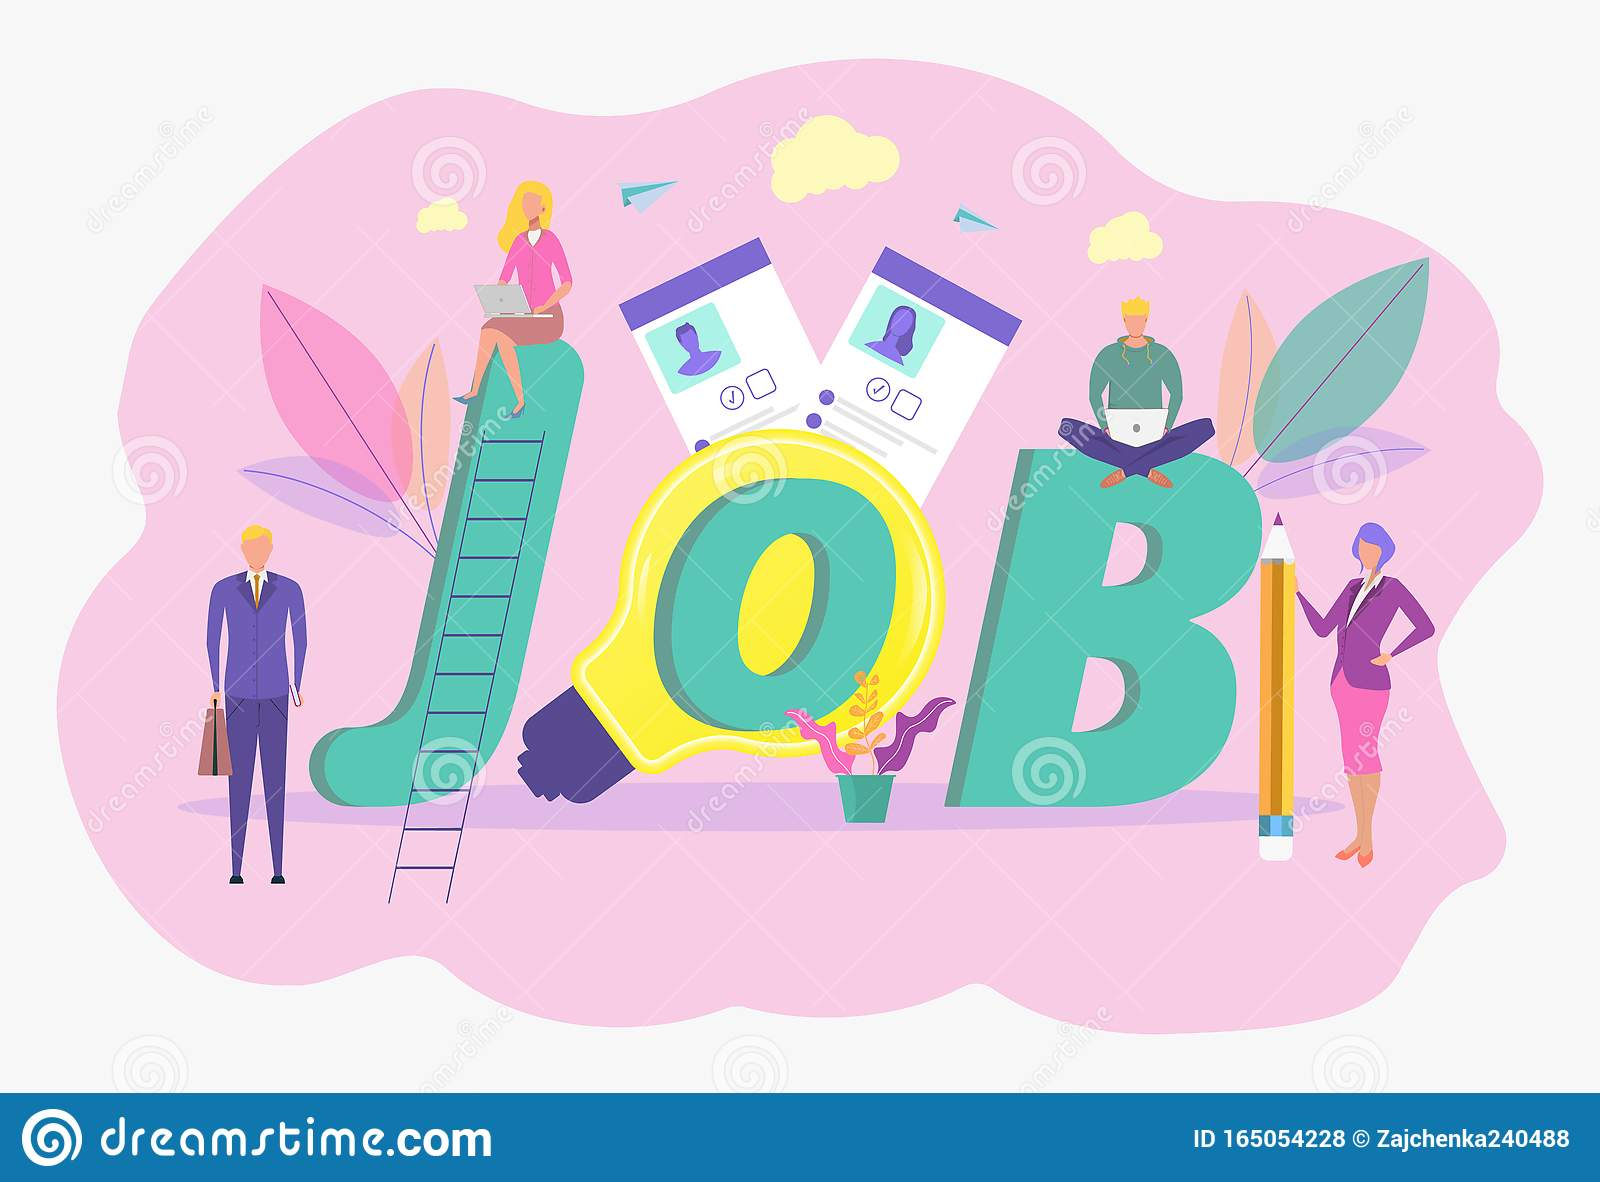 Job Search Recruitment Workgroup Web Graphic Design Summary